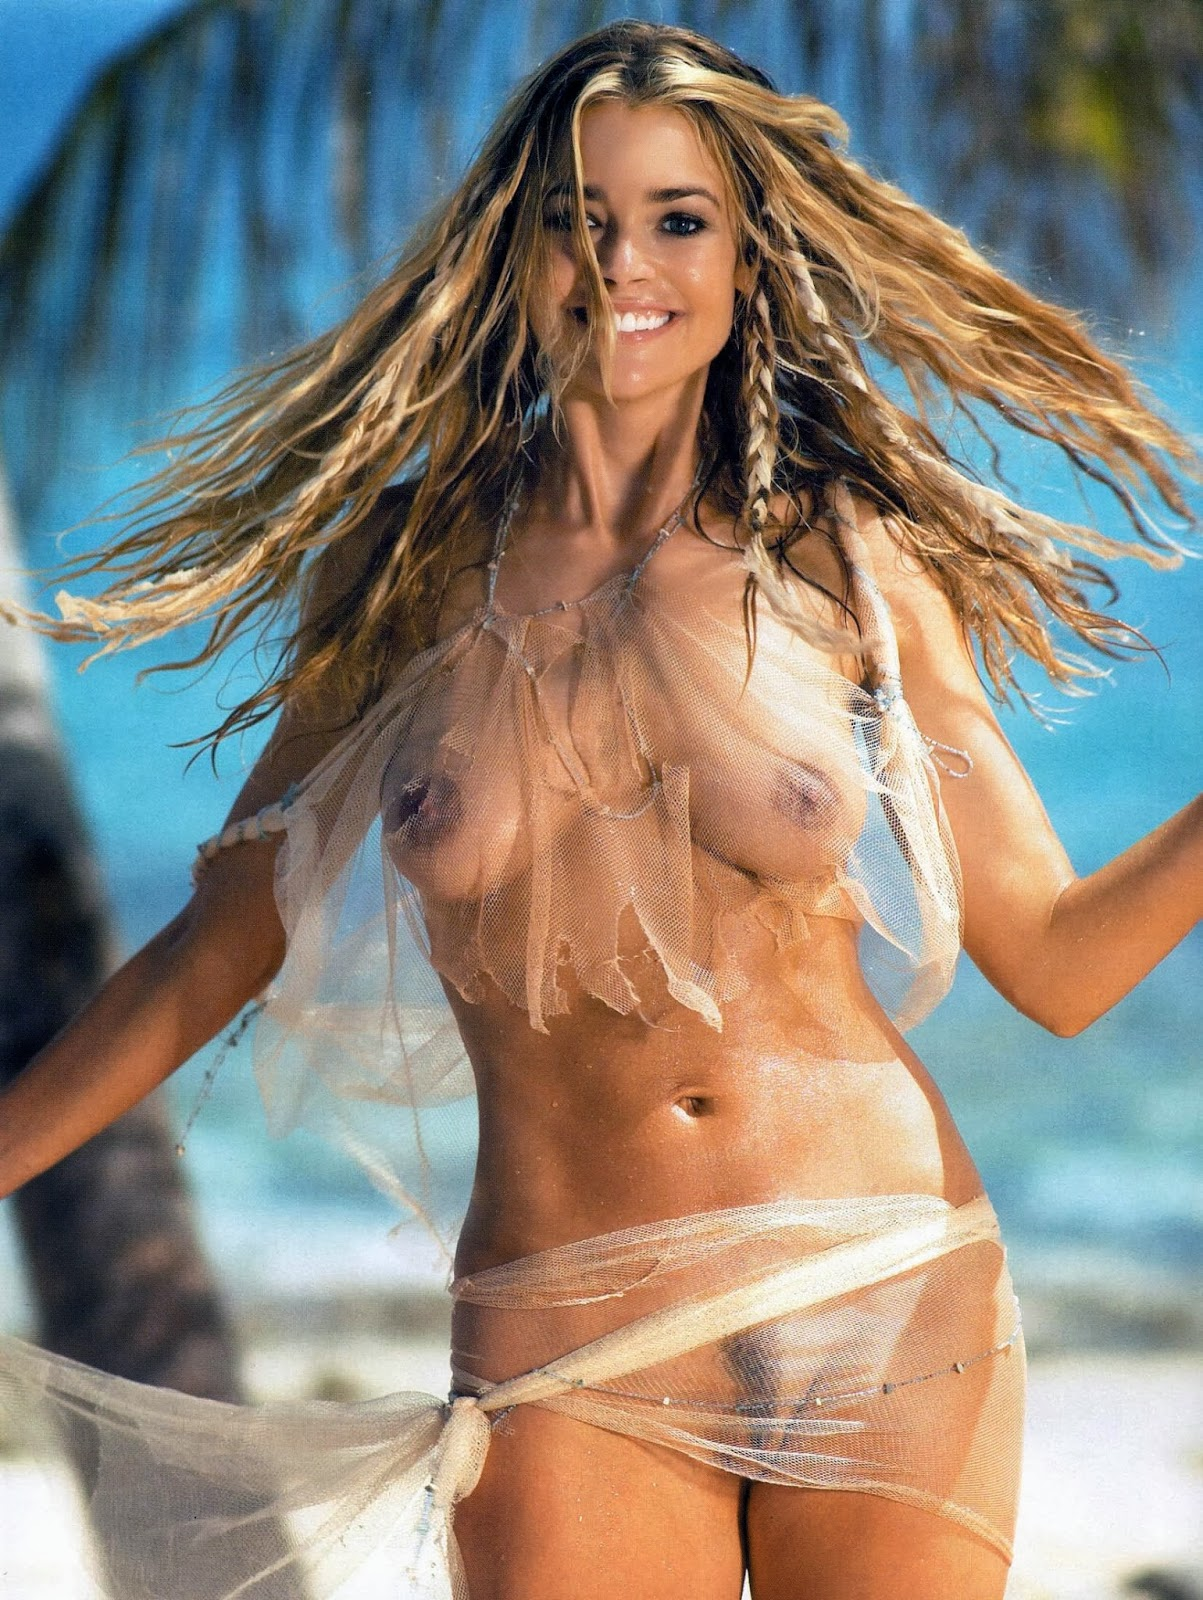 denise richards naked tits